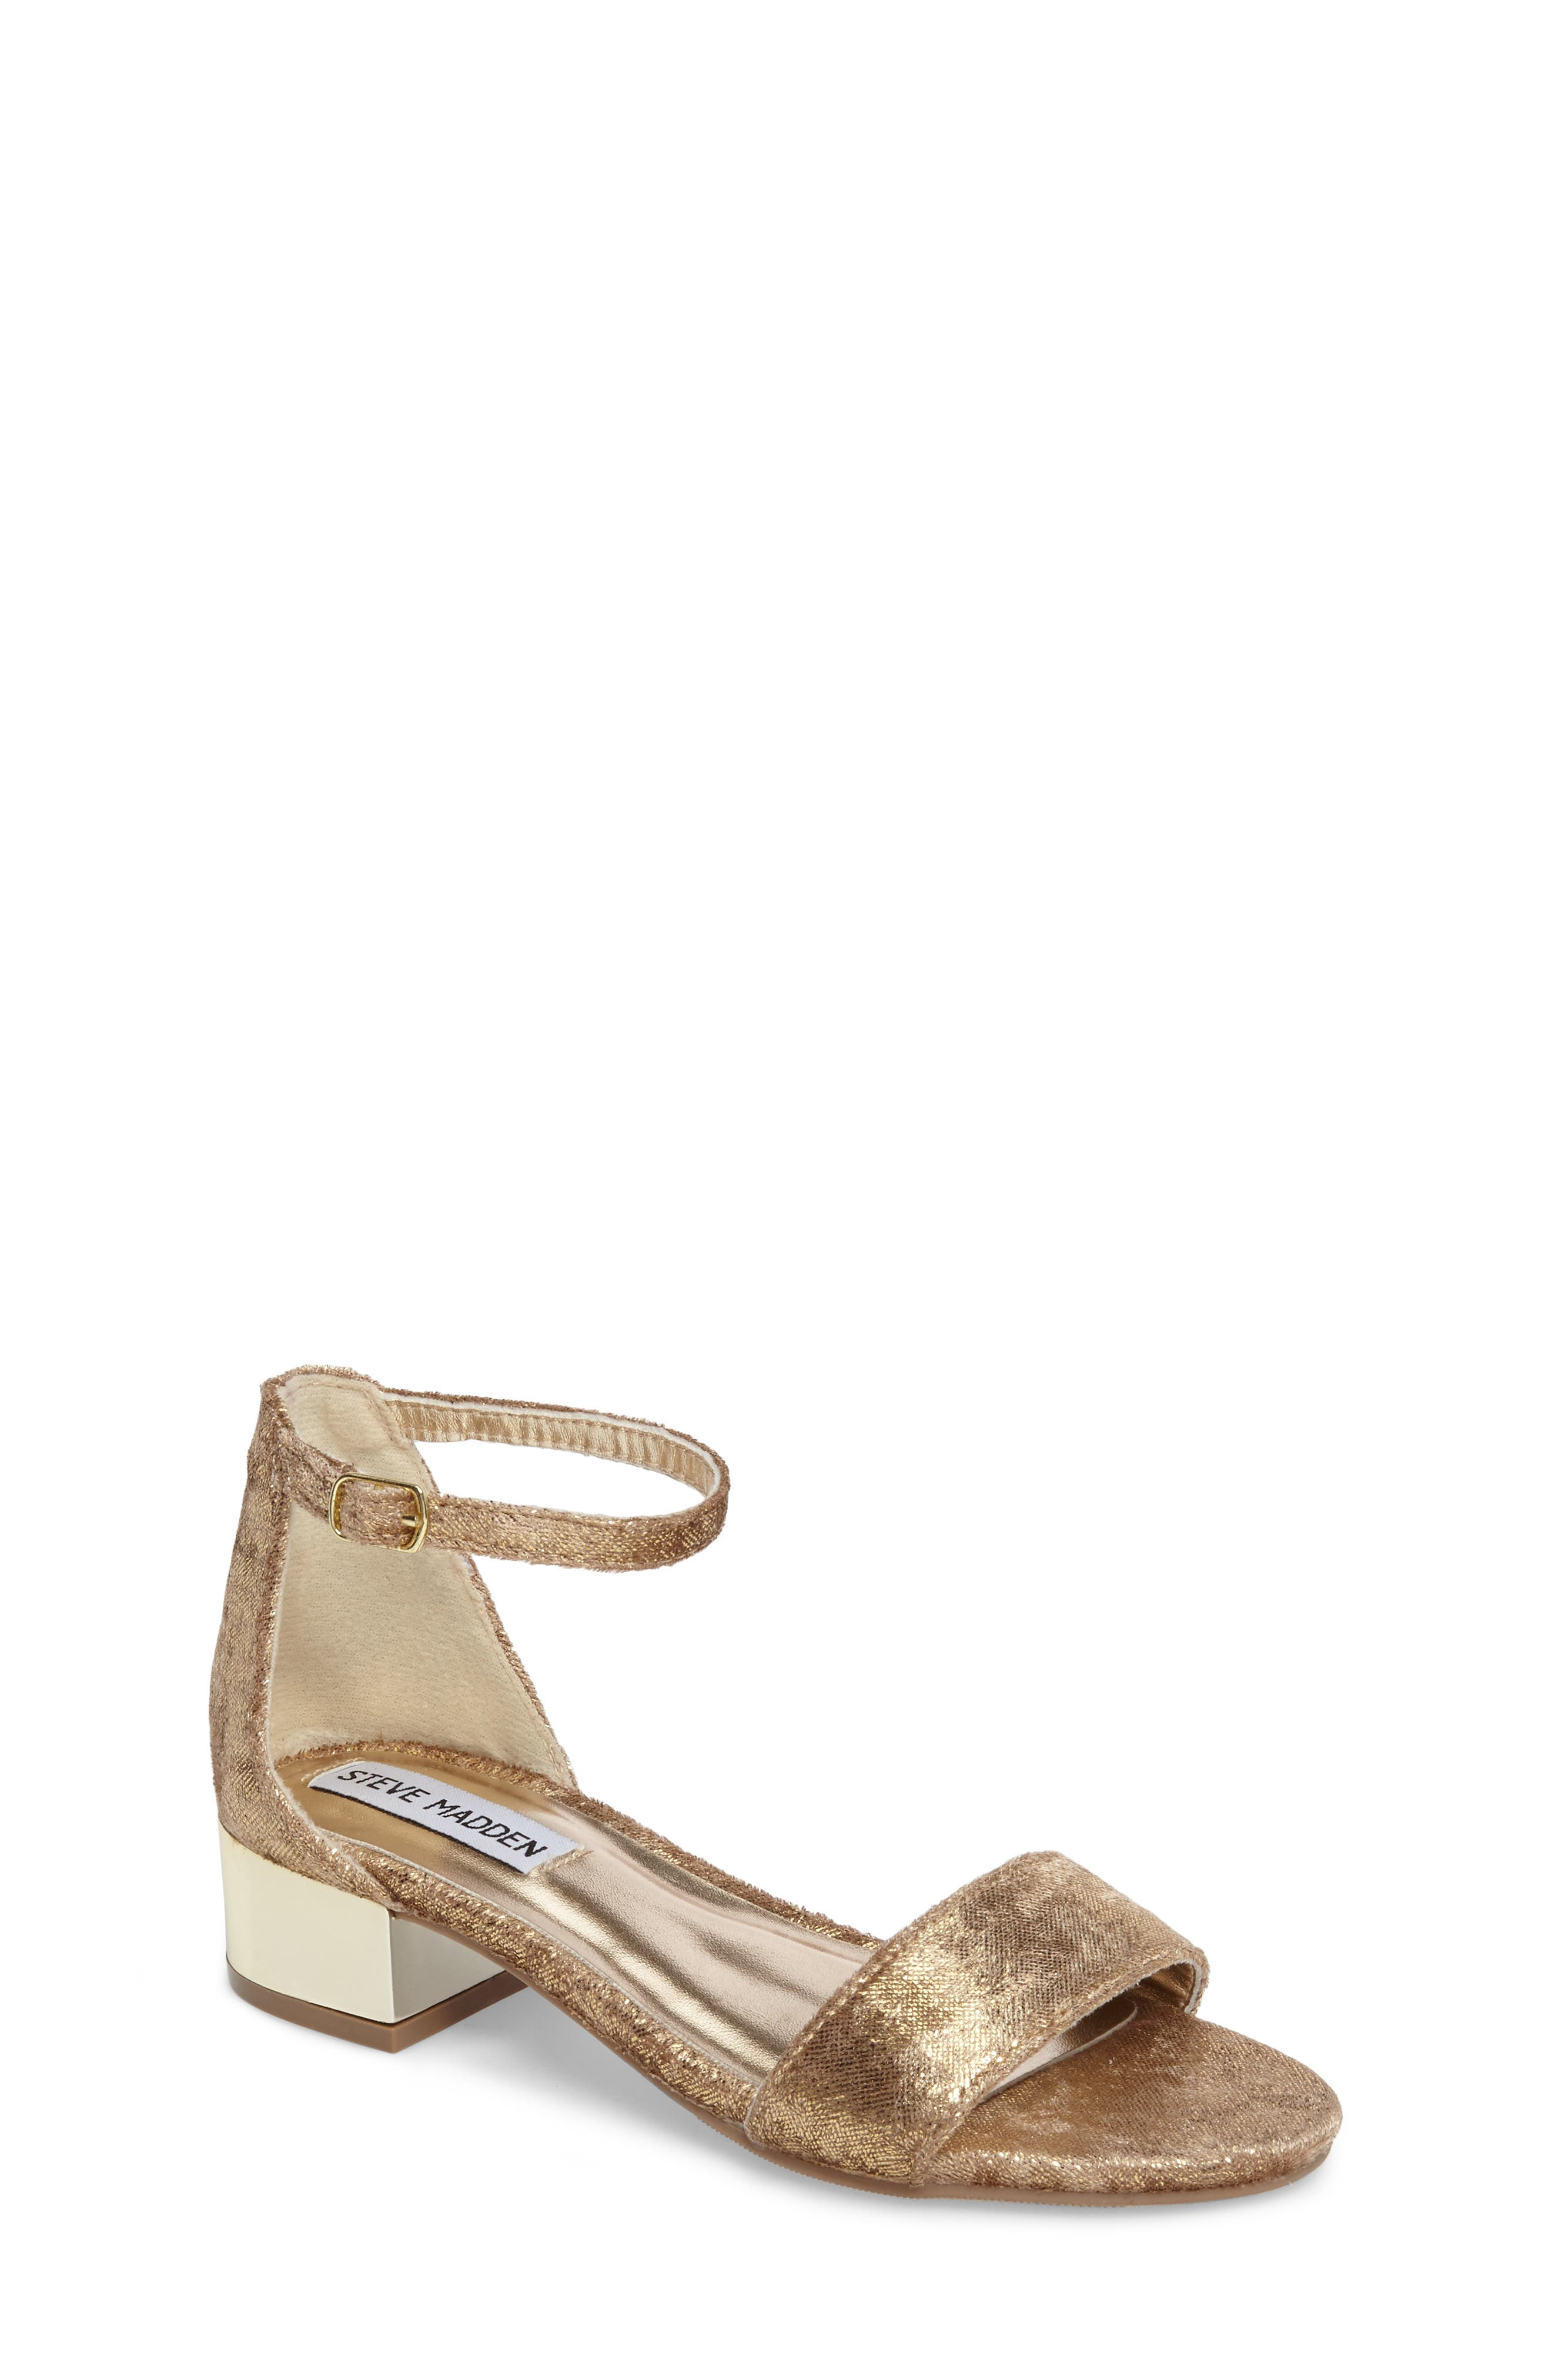 Steve Madden Jirene Metallic Sandal (Little Kid & Big Kid)